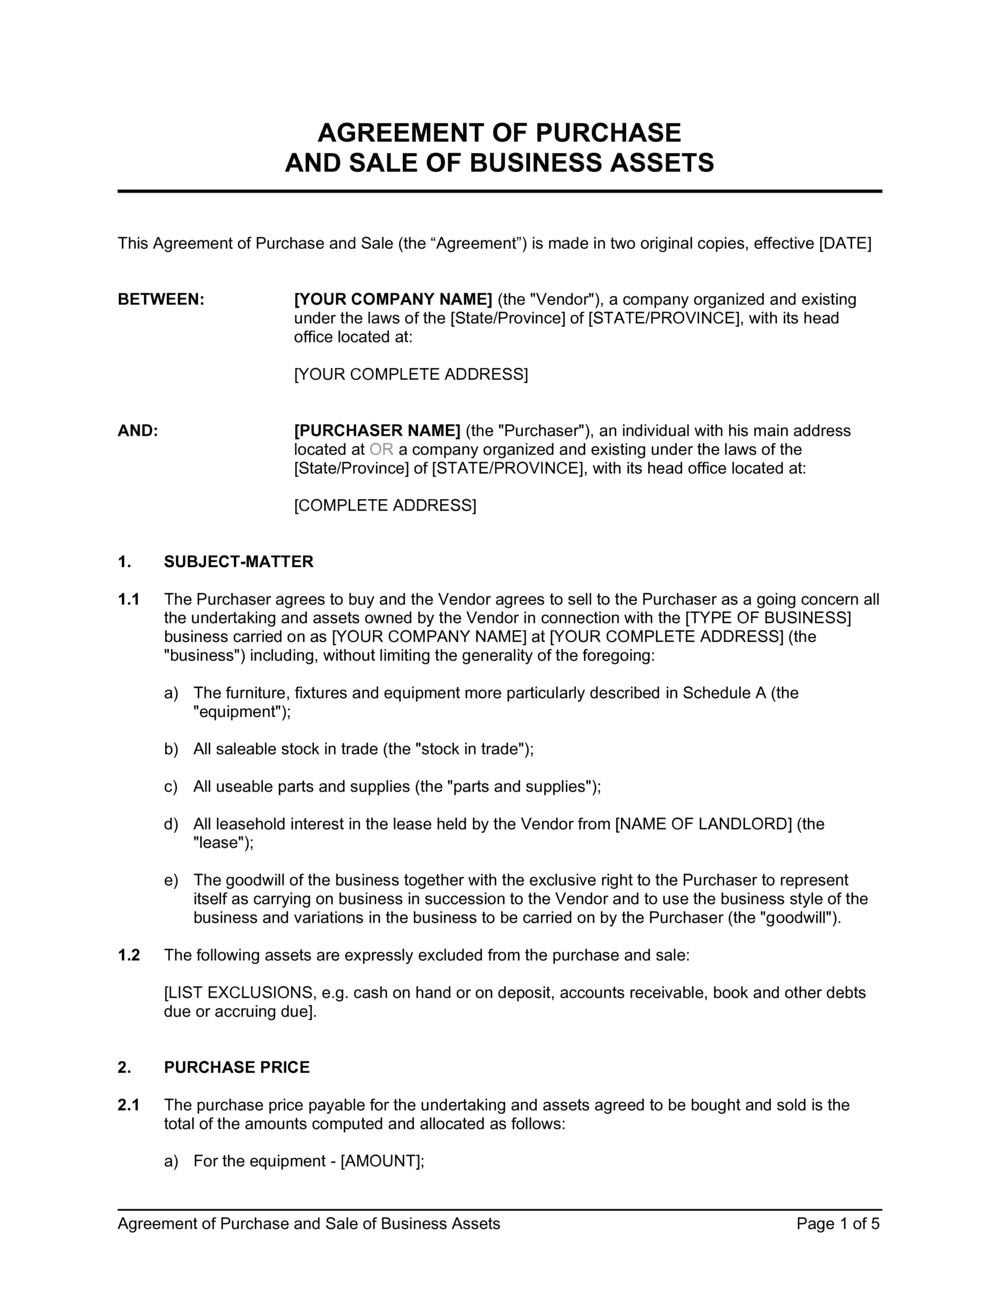 Business-in-a-Box's Agreement of Purchase and Sale of Business Assets Template